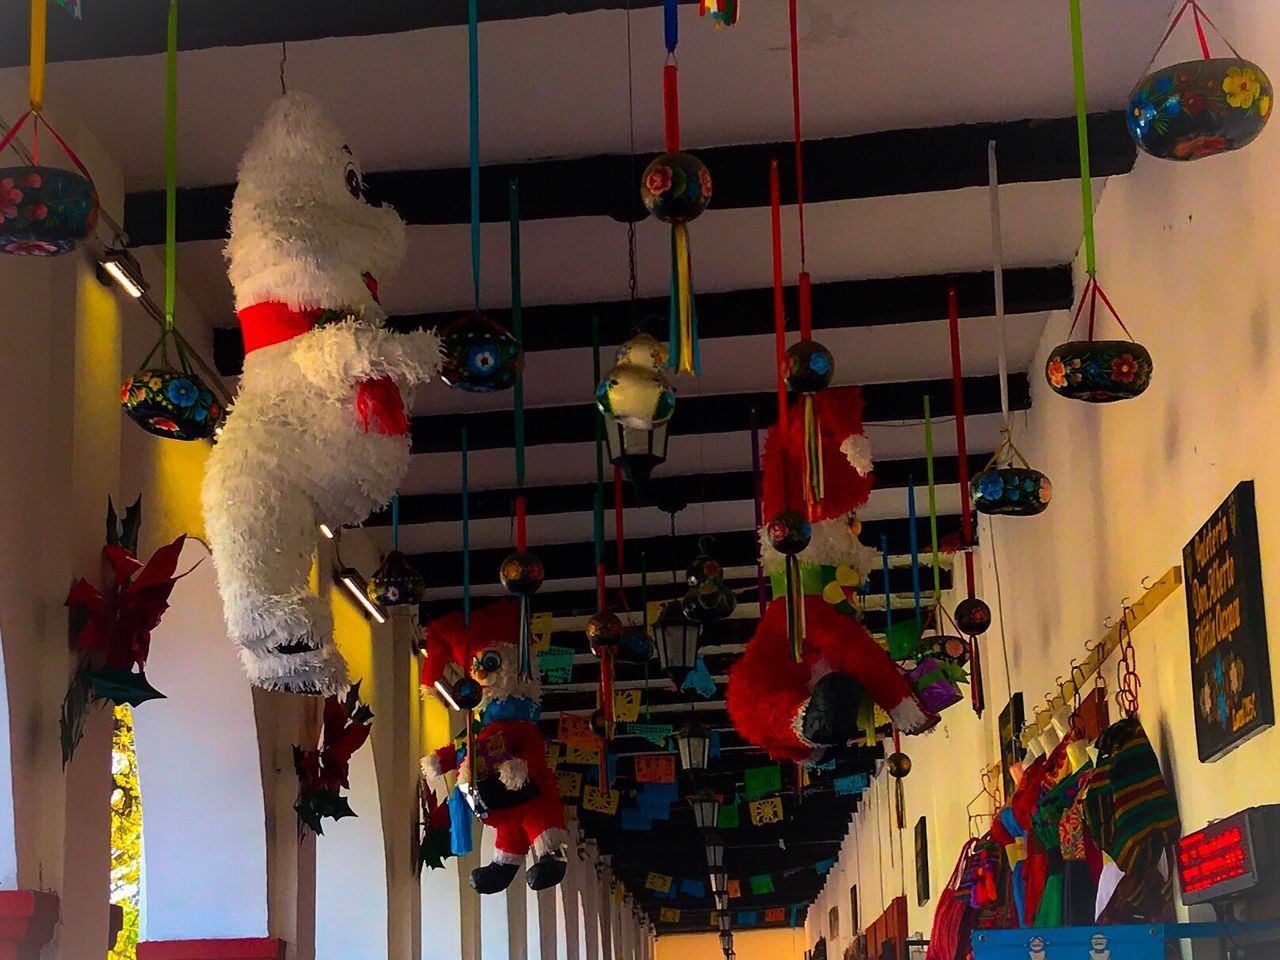 Traveling Home For The Holidays Hanging Cultures No People Celebration Stuffed Toy Indoors  Multi Colored Day Mexico Outdoor Piñata Store Travel Lieblingsteil